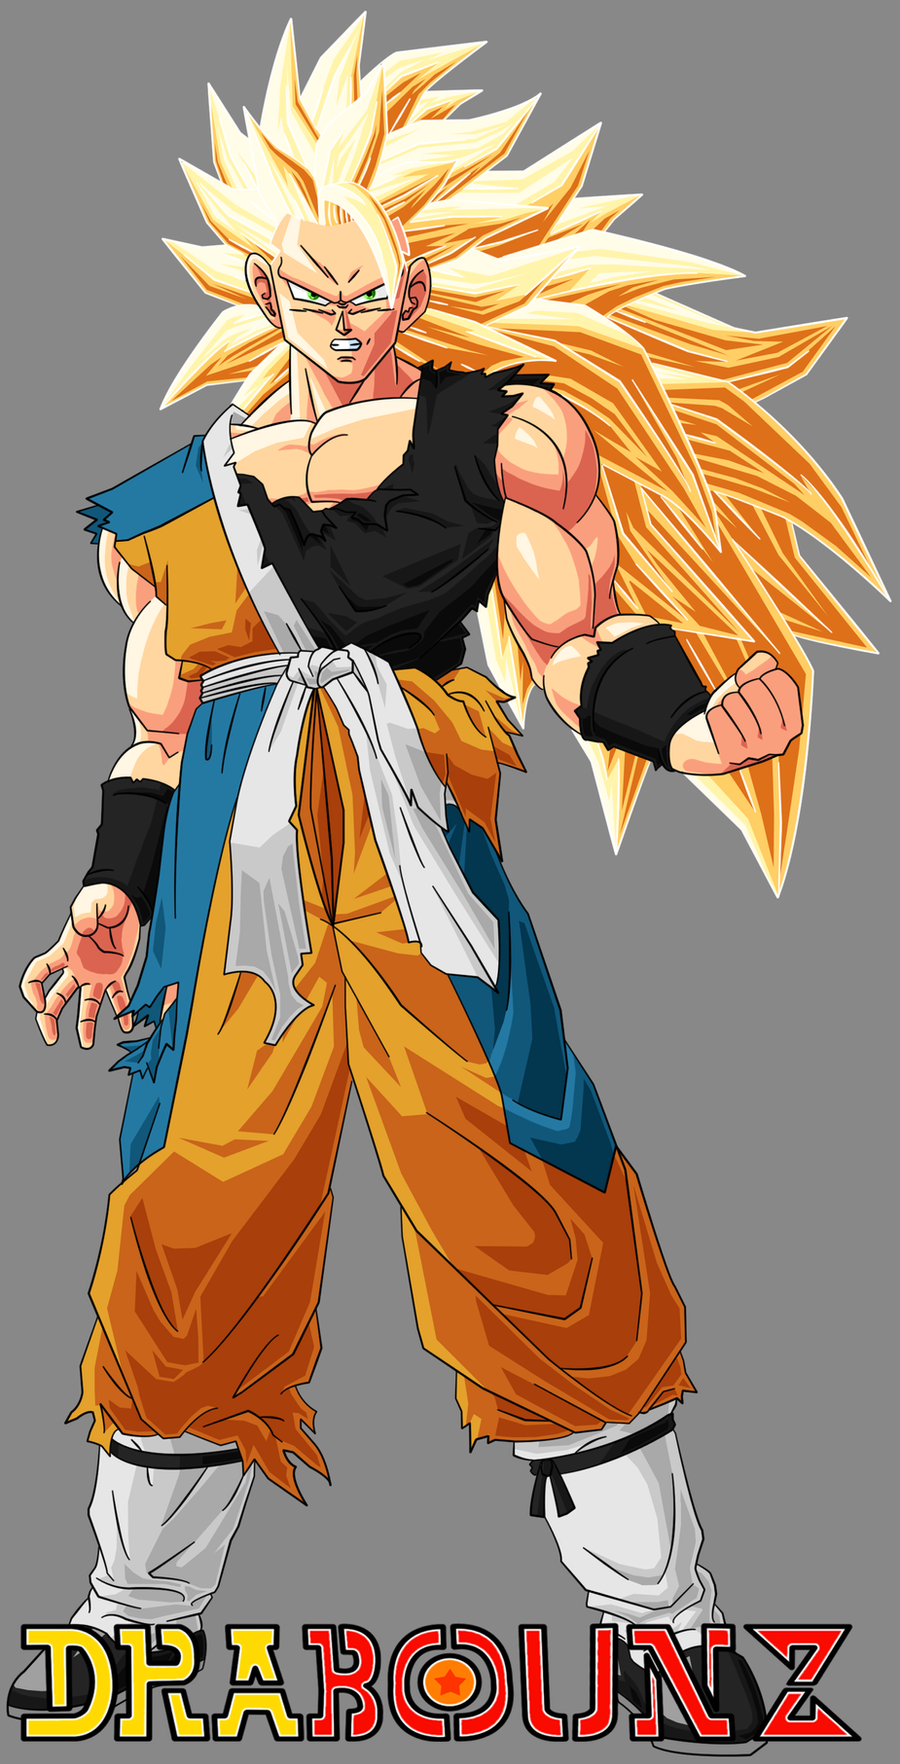 dbz fake 22 by DrabounZ